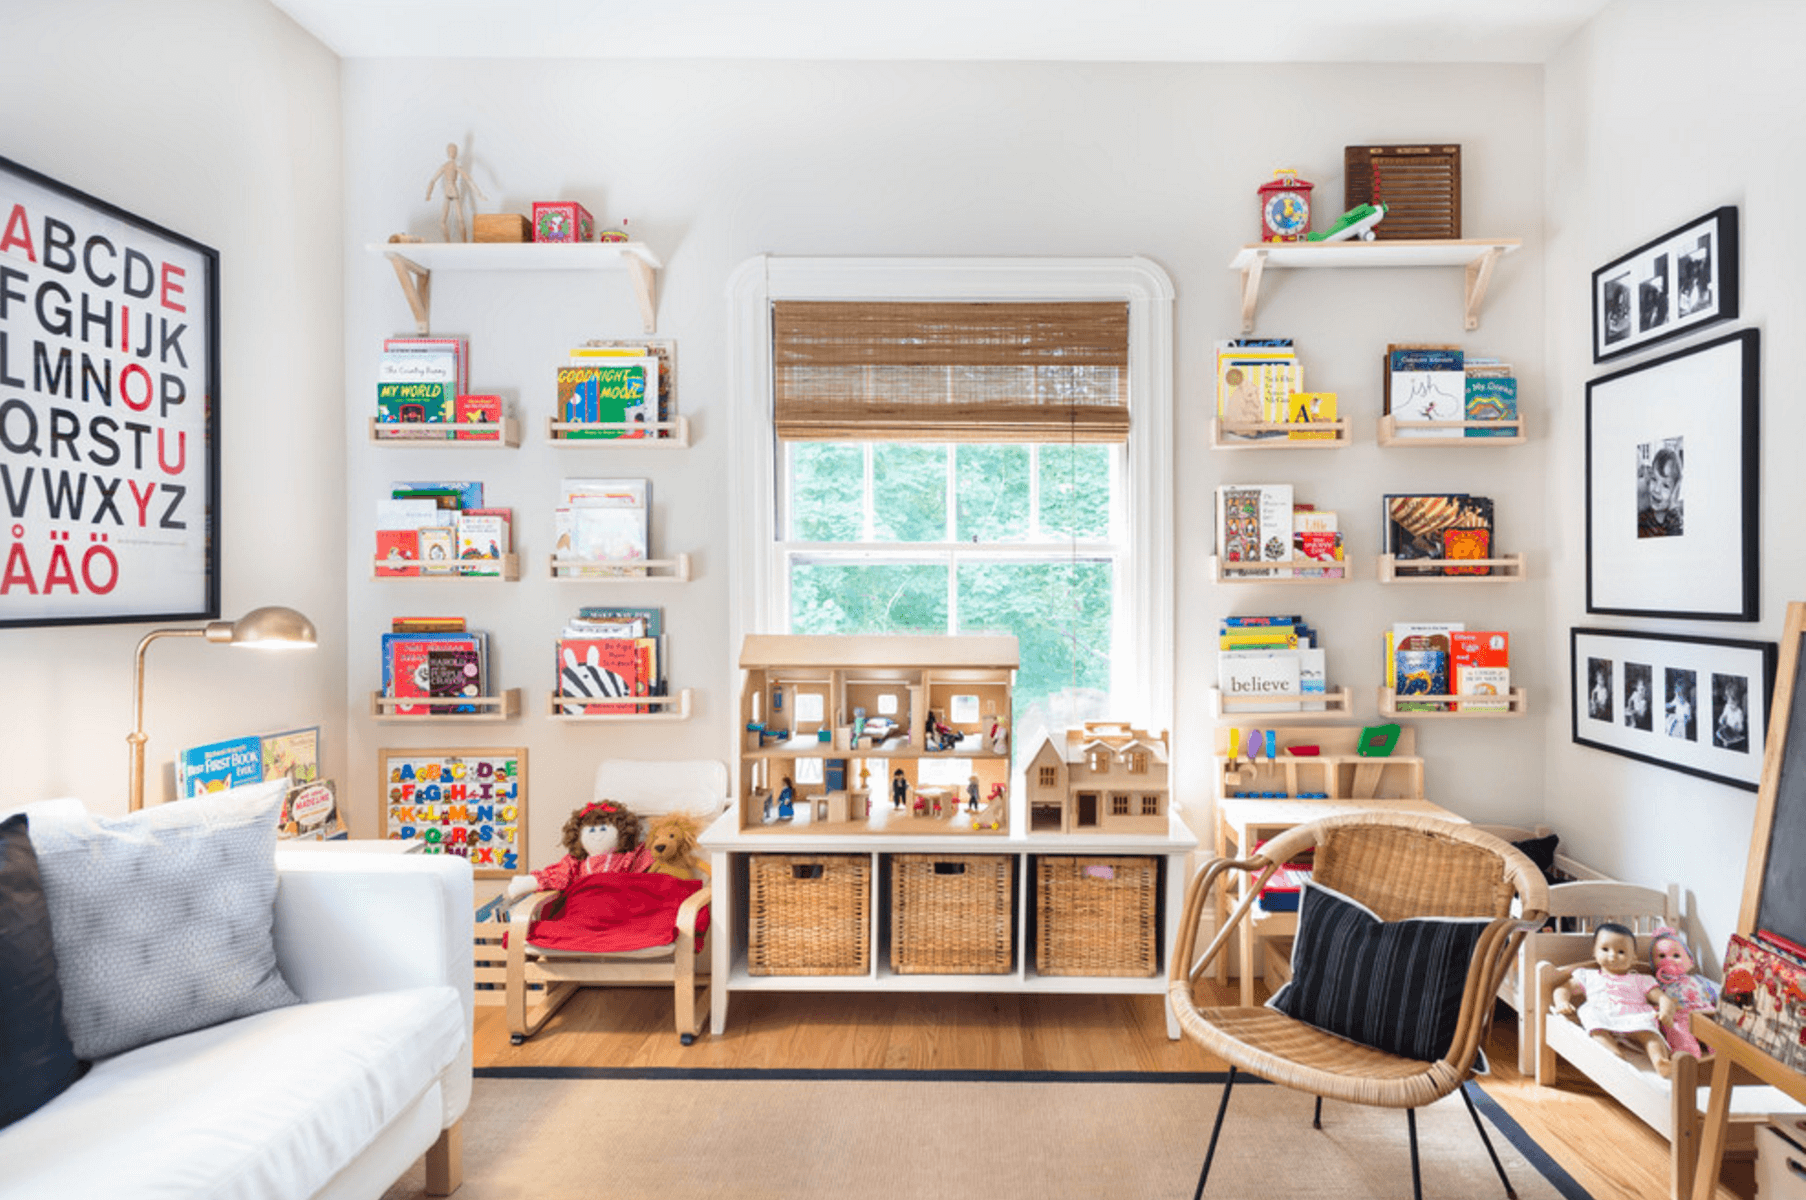 9 Ideas for Adding Color to a Kids Room